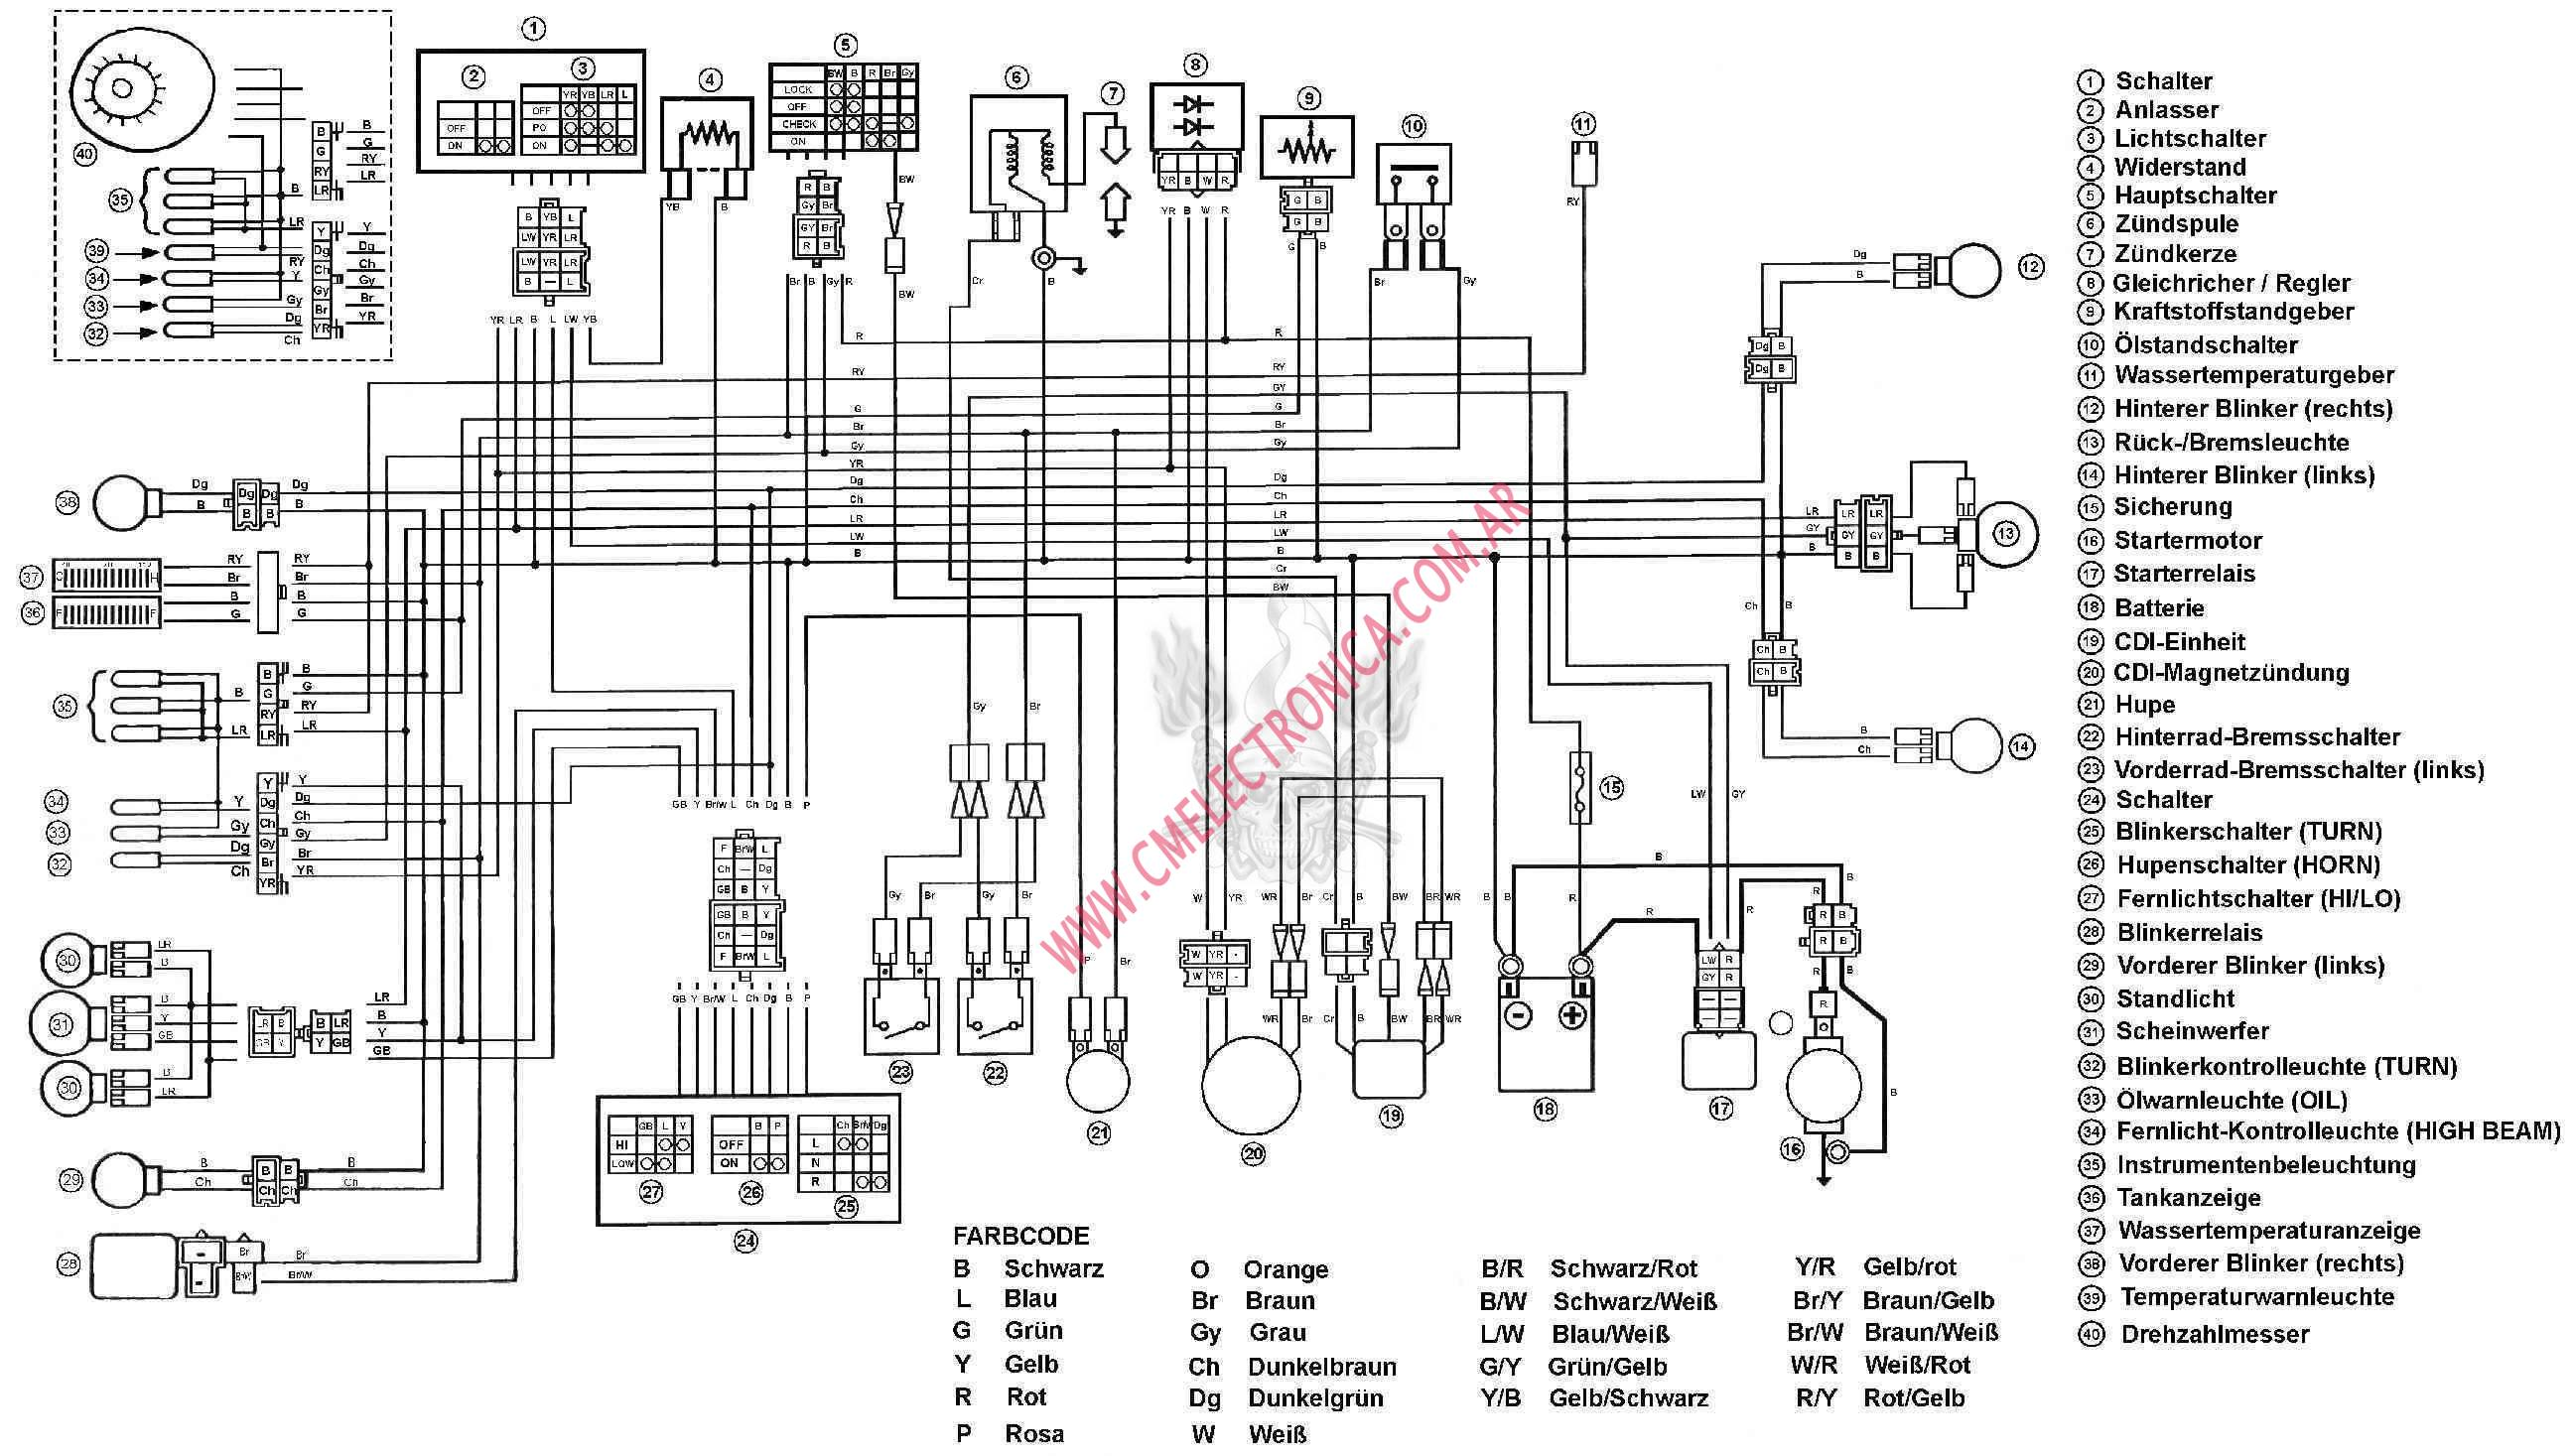 1968 Gm Wiper Switch Wiring Diagram, 1968, Get Free Image